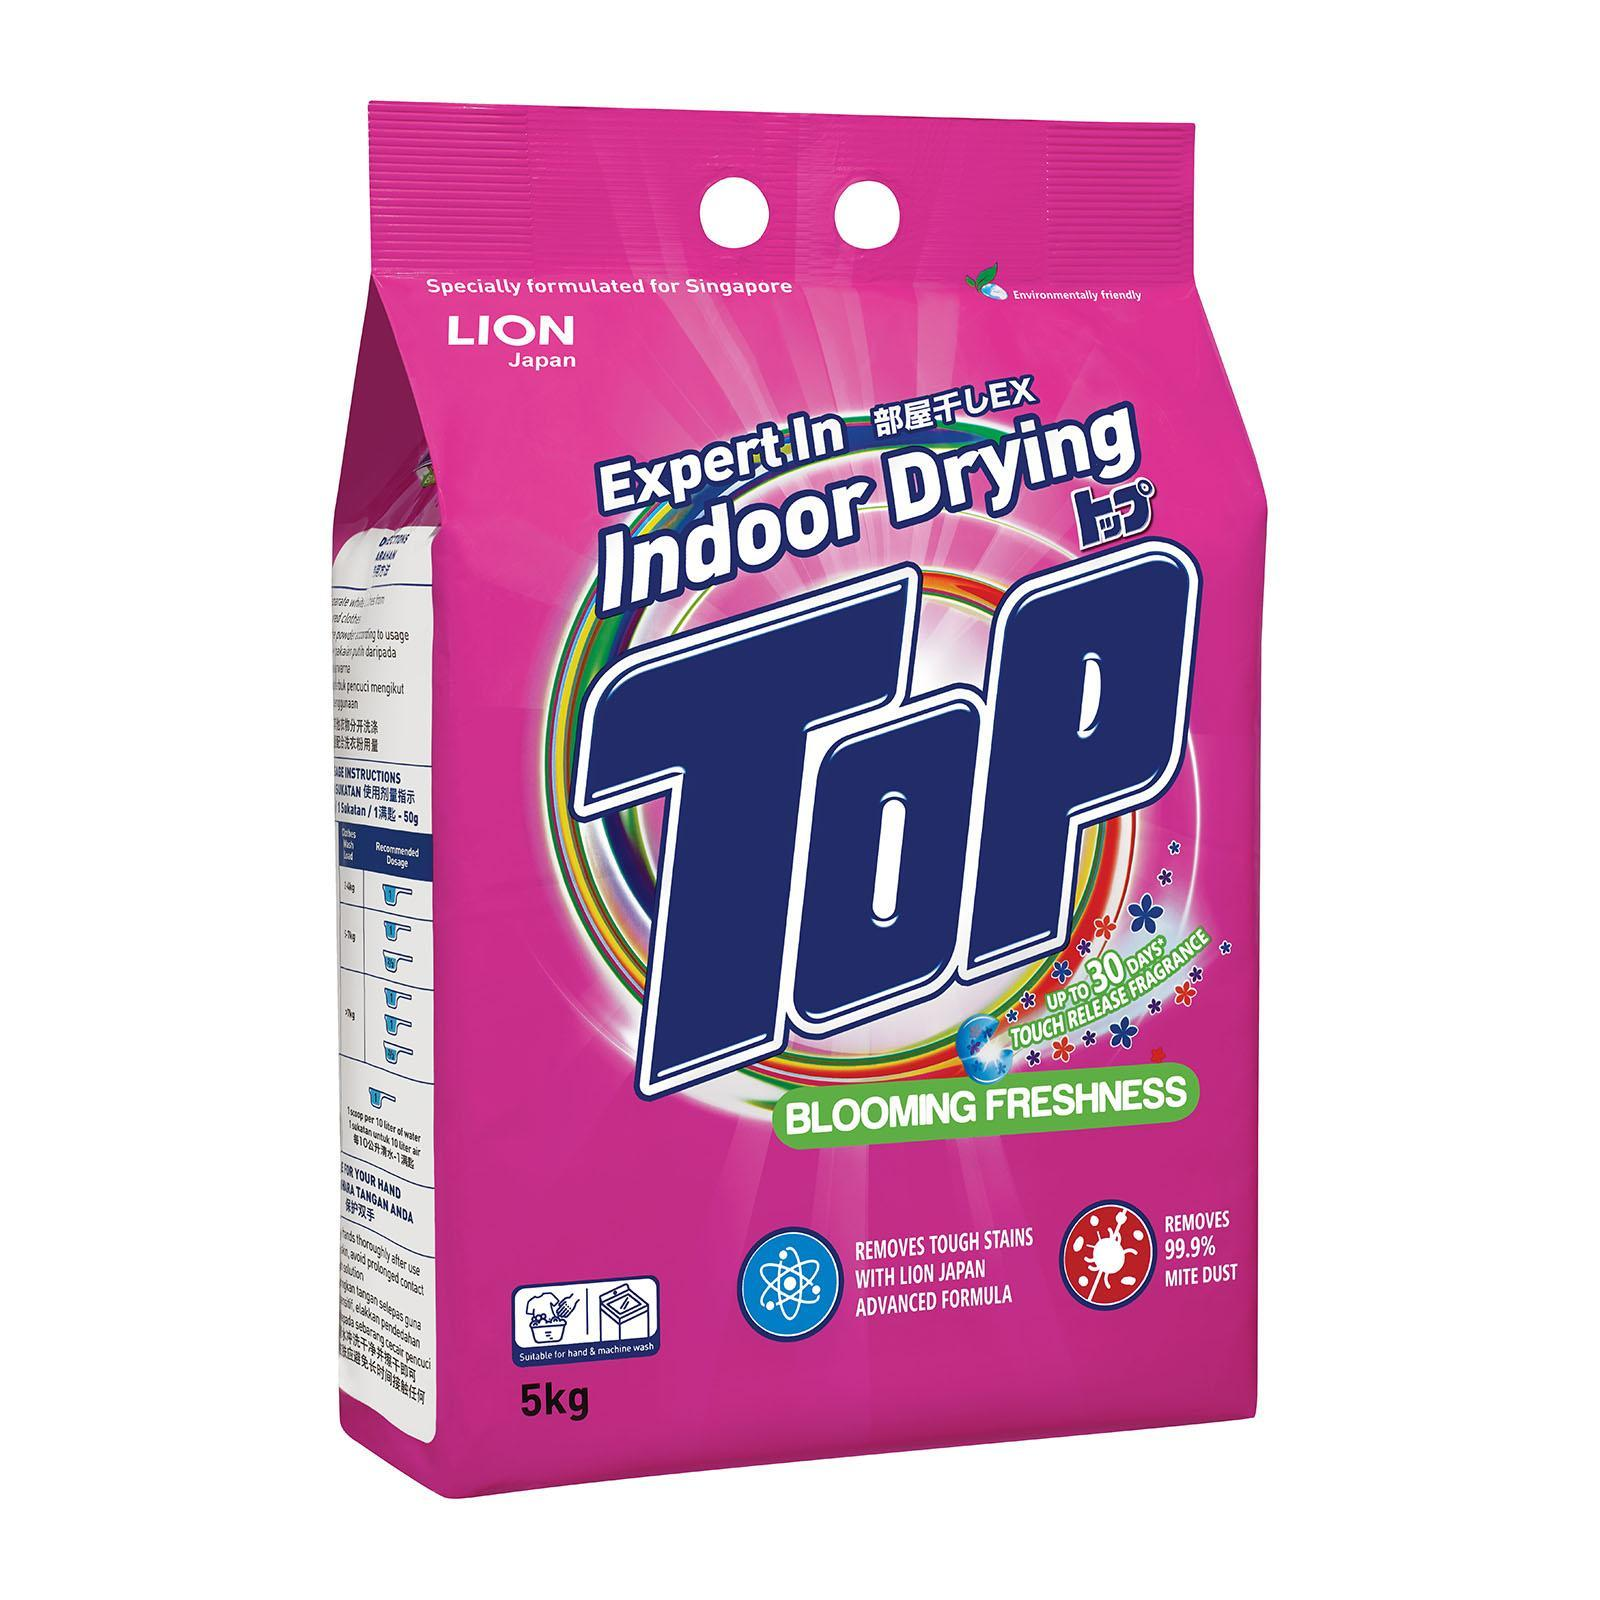 Top Indoor Drying - Blooming Freshness - Powder Detergent